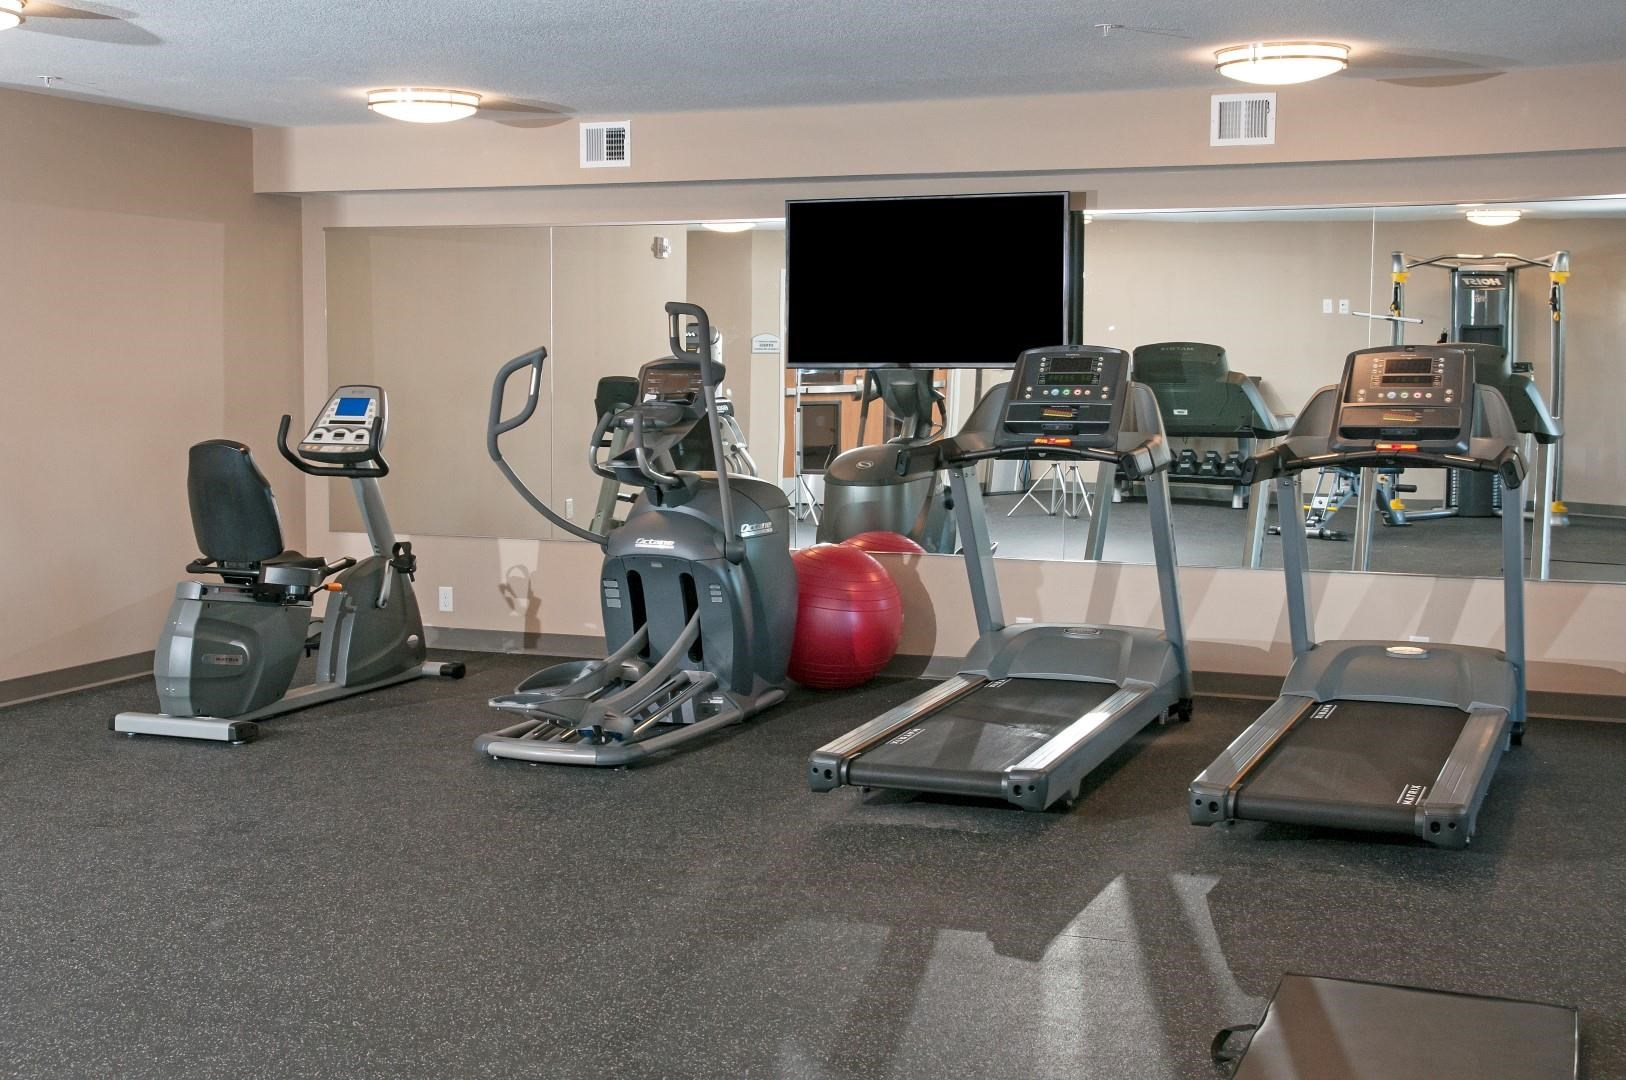 Fitness Room at Carver Crossing with Wall Length Mirrors and Flat Screen Television